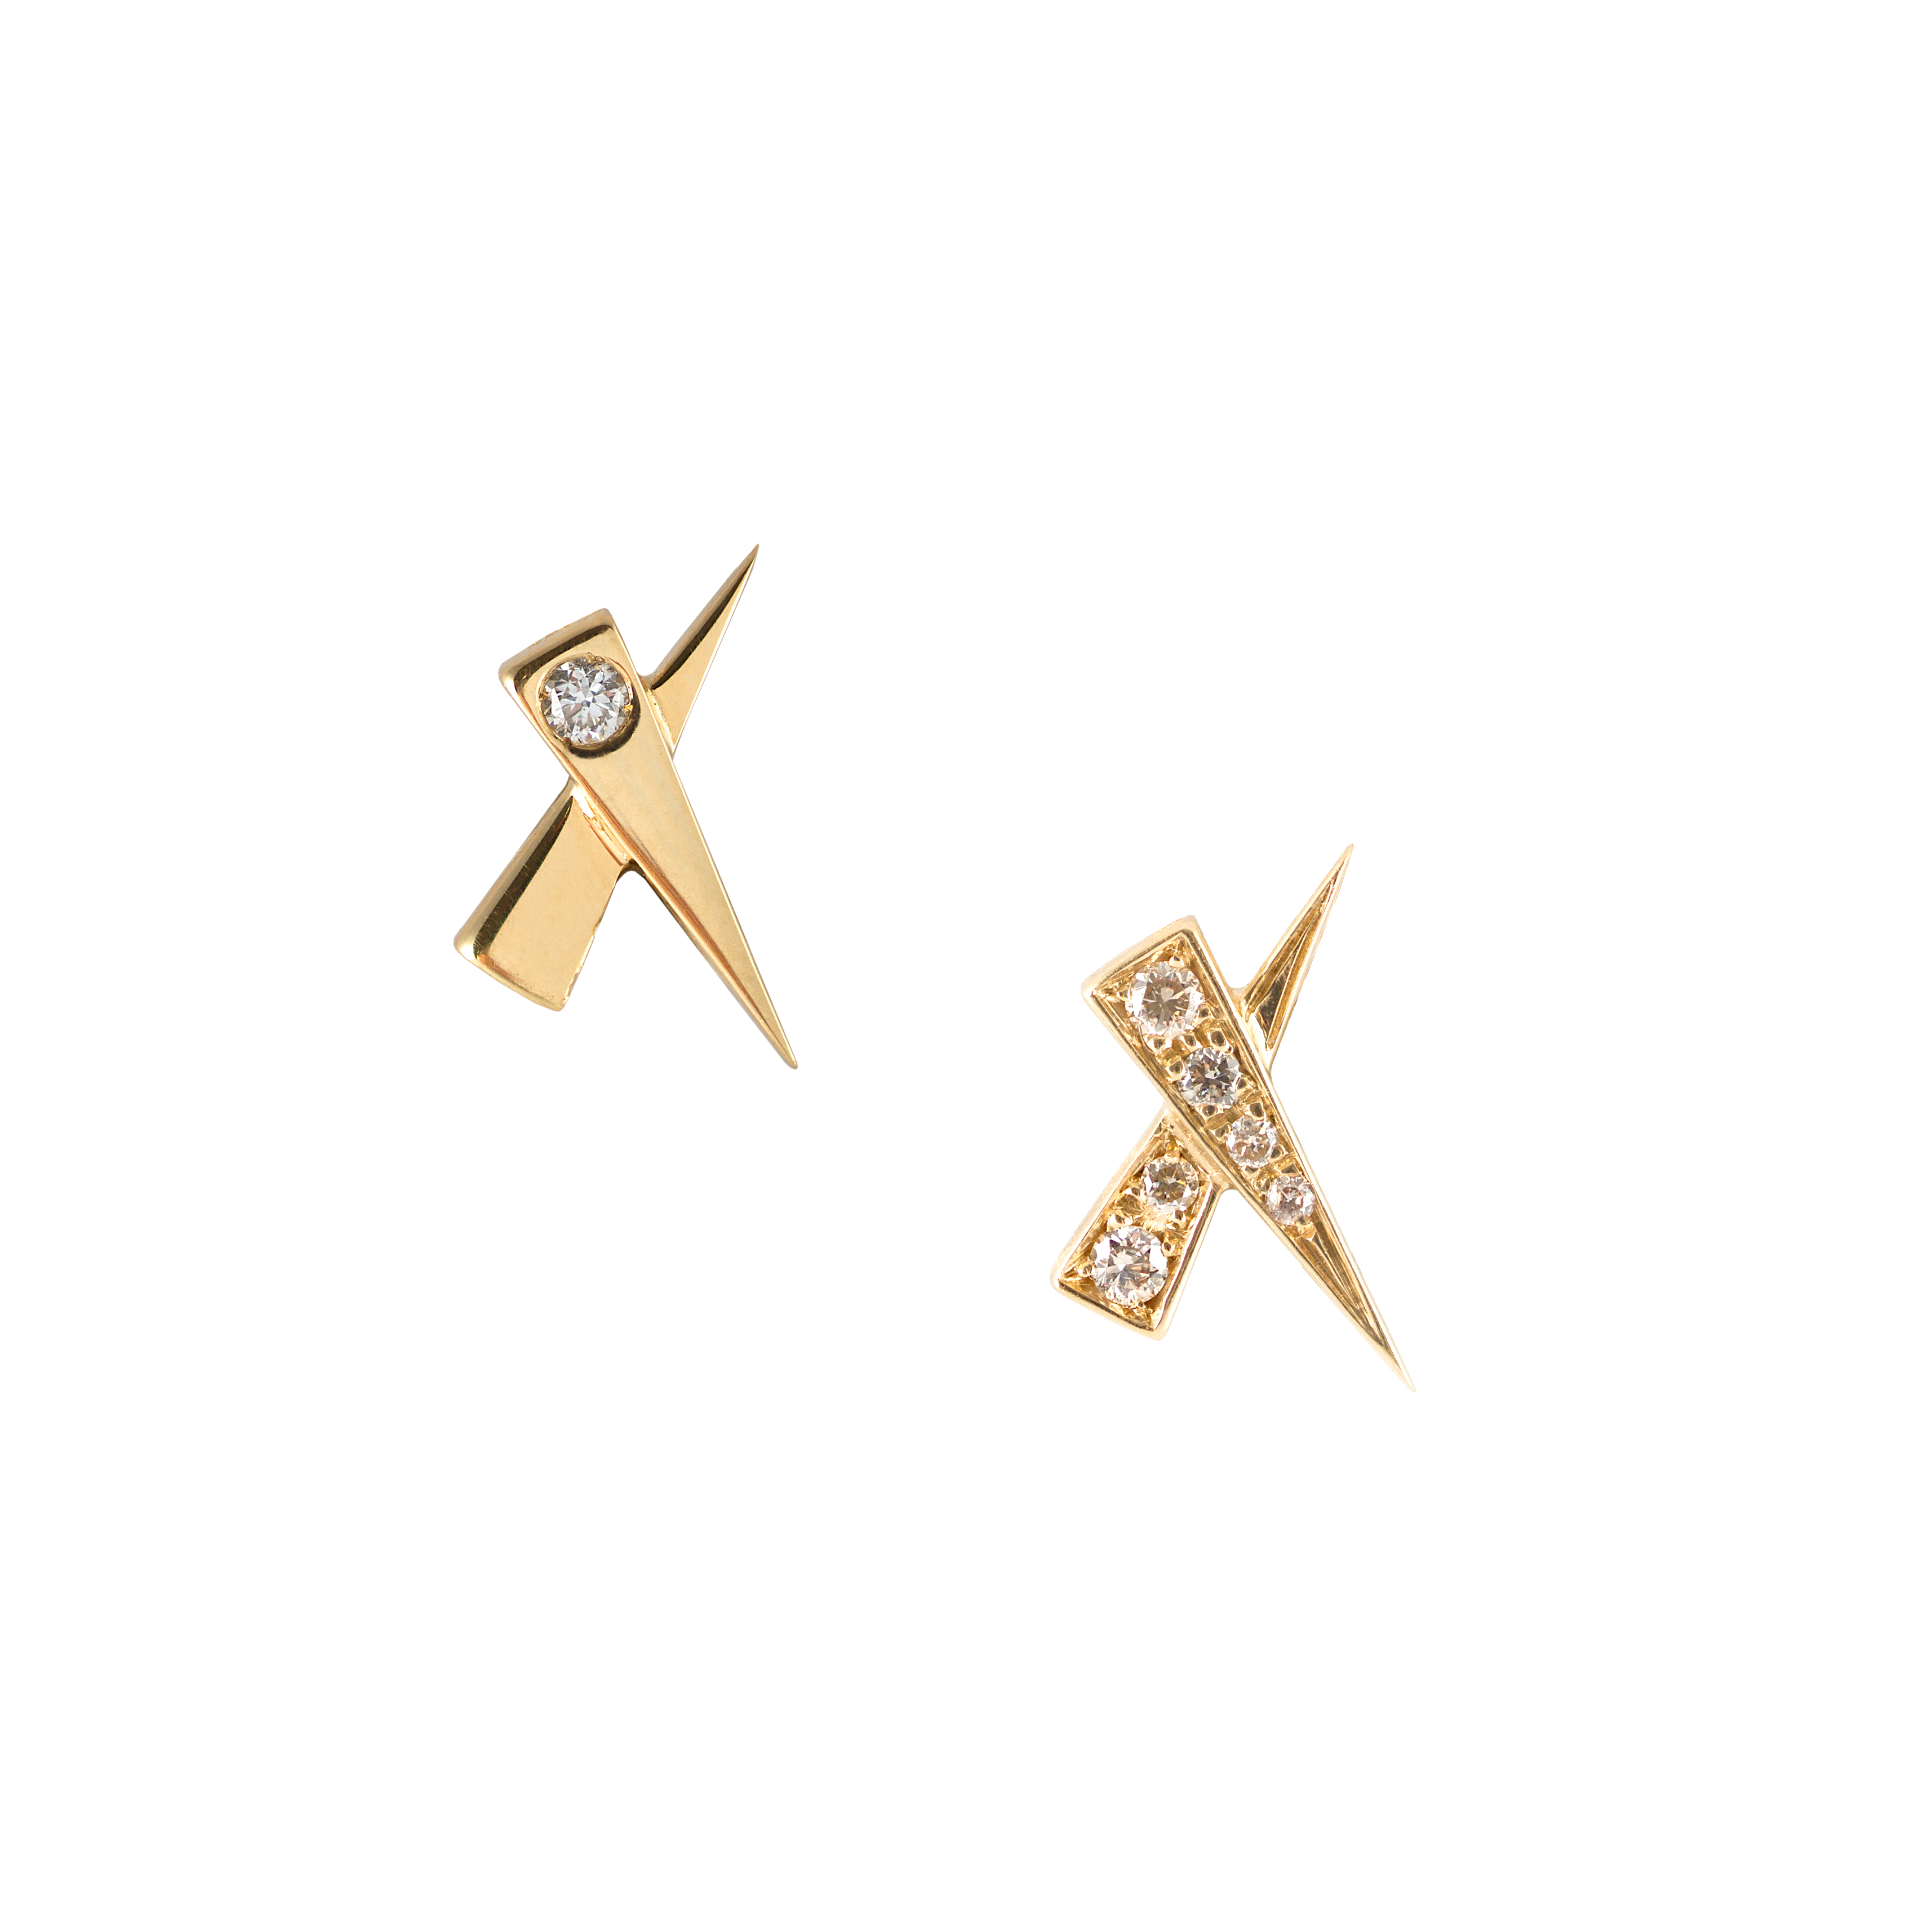 Single Diamond Pave Kiss Gold Earring by Daou Jewellery on curated-crowd.com